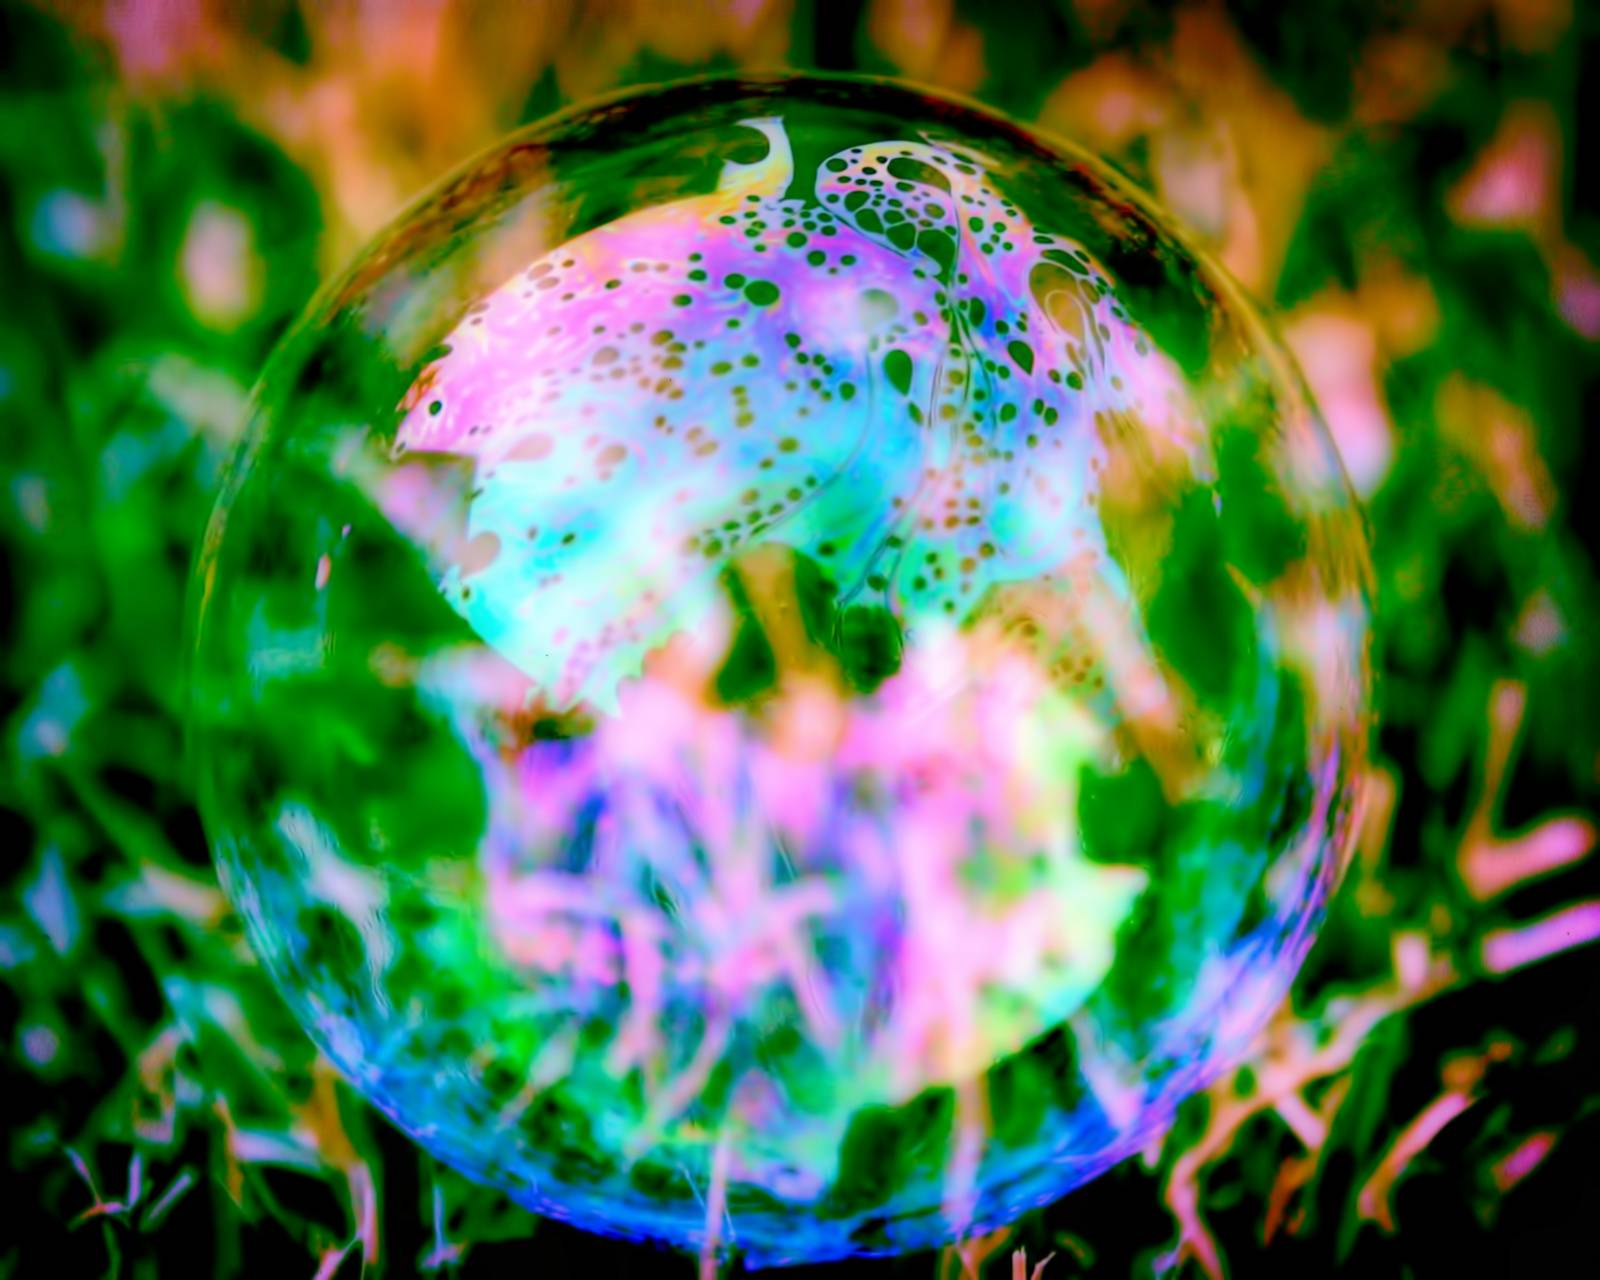 Bright bubble